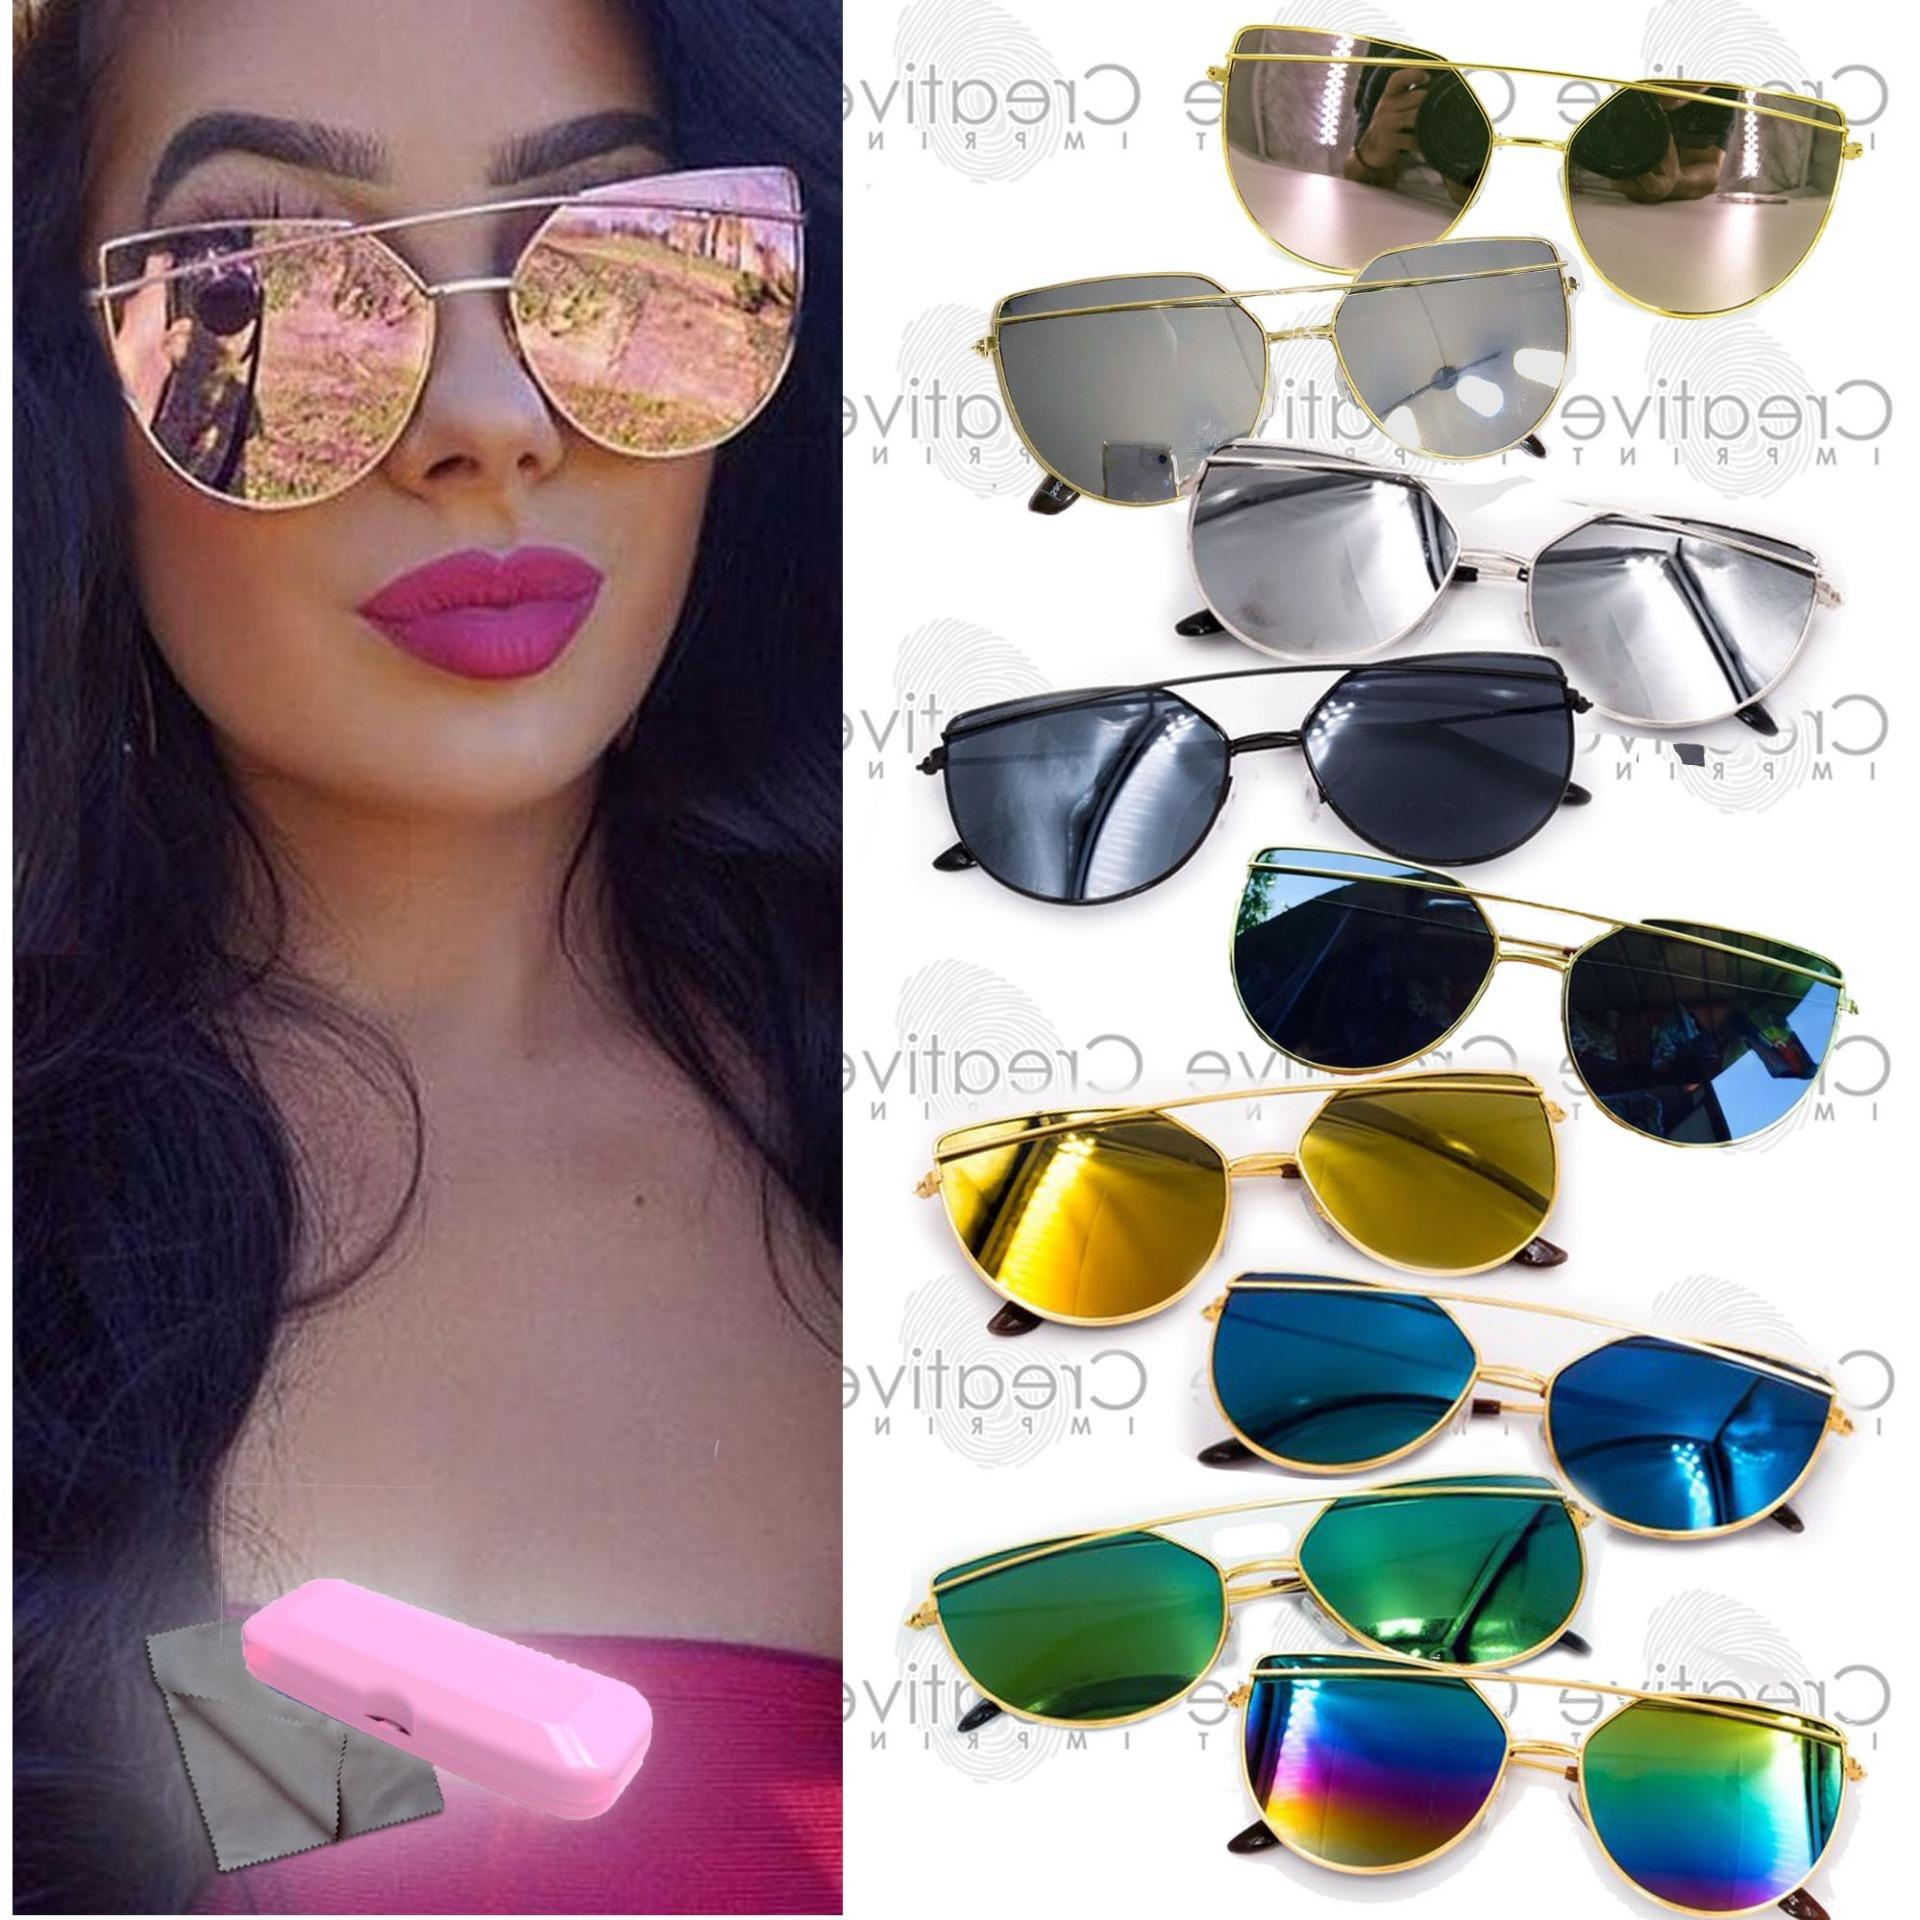 7443b6ac41 77115 items found in Women. Double Bridge Cat Eye Flat Sunnies Sunglasses  (FREE CASE WIPER) Shades Light Metal Lens